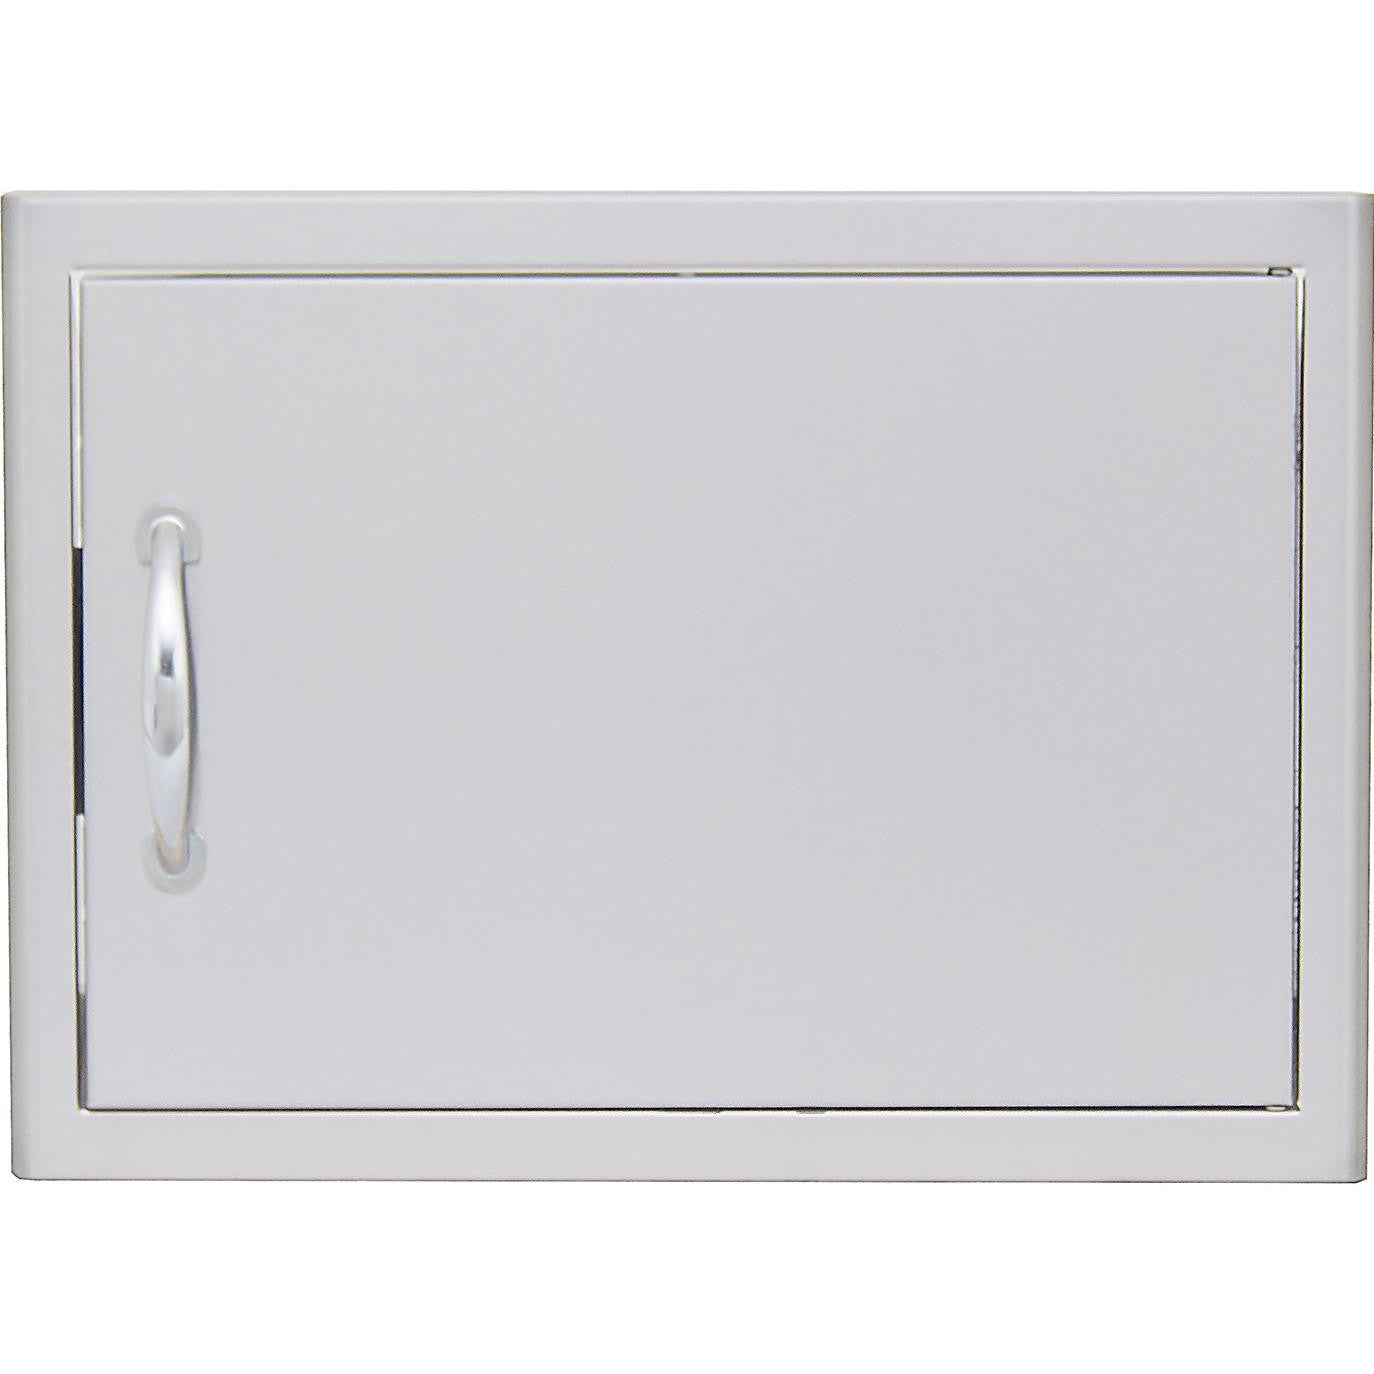 Blaze 28-Inch Single Access Door - Horizontal - The Garden District